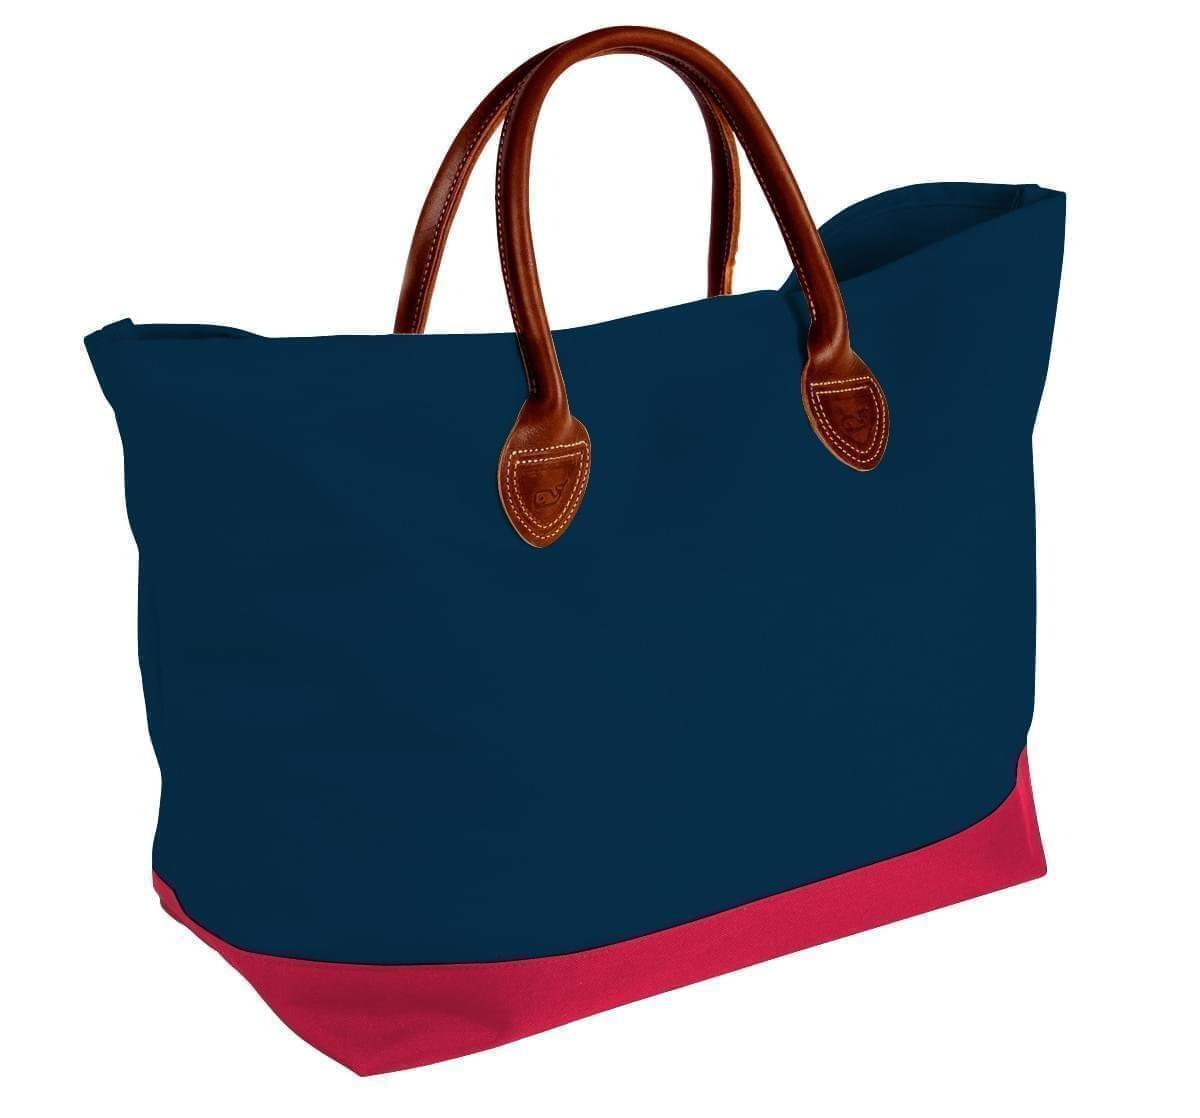 USA Made Canvas Leather Handle Totes, Navy-Red, 10899-LC9